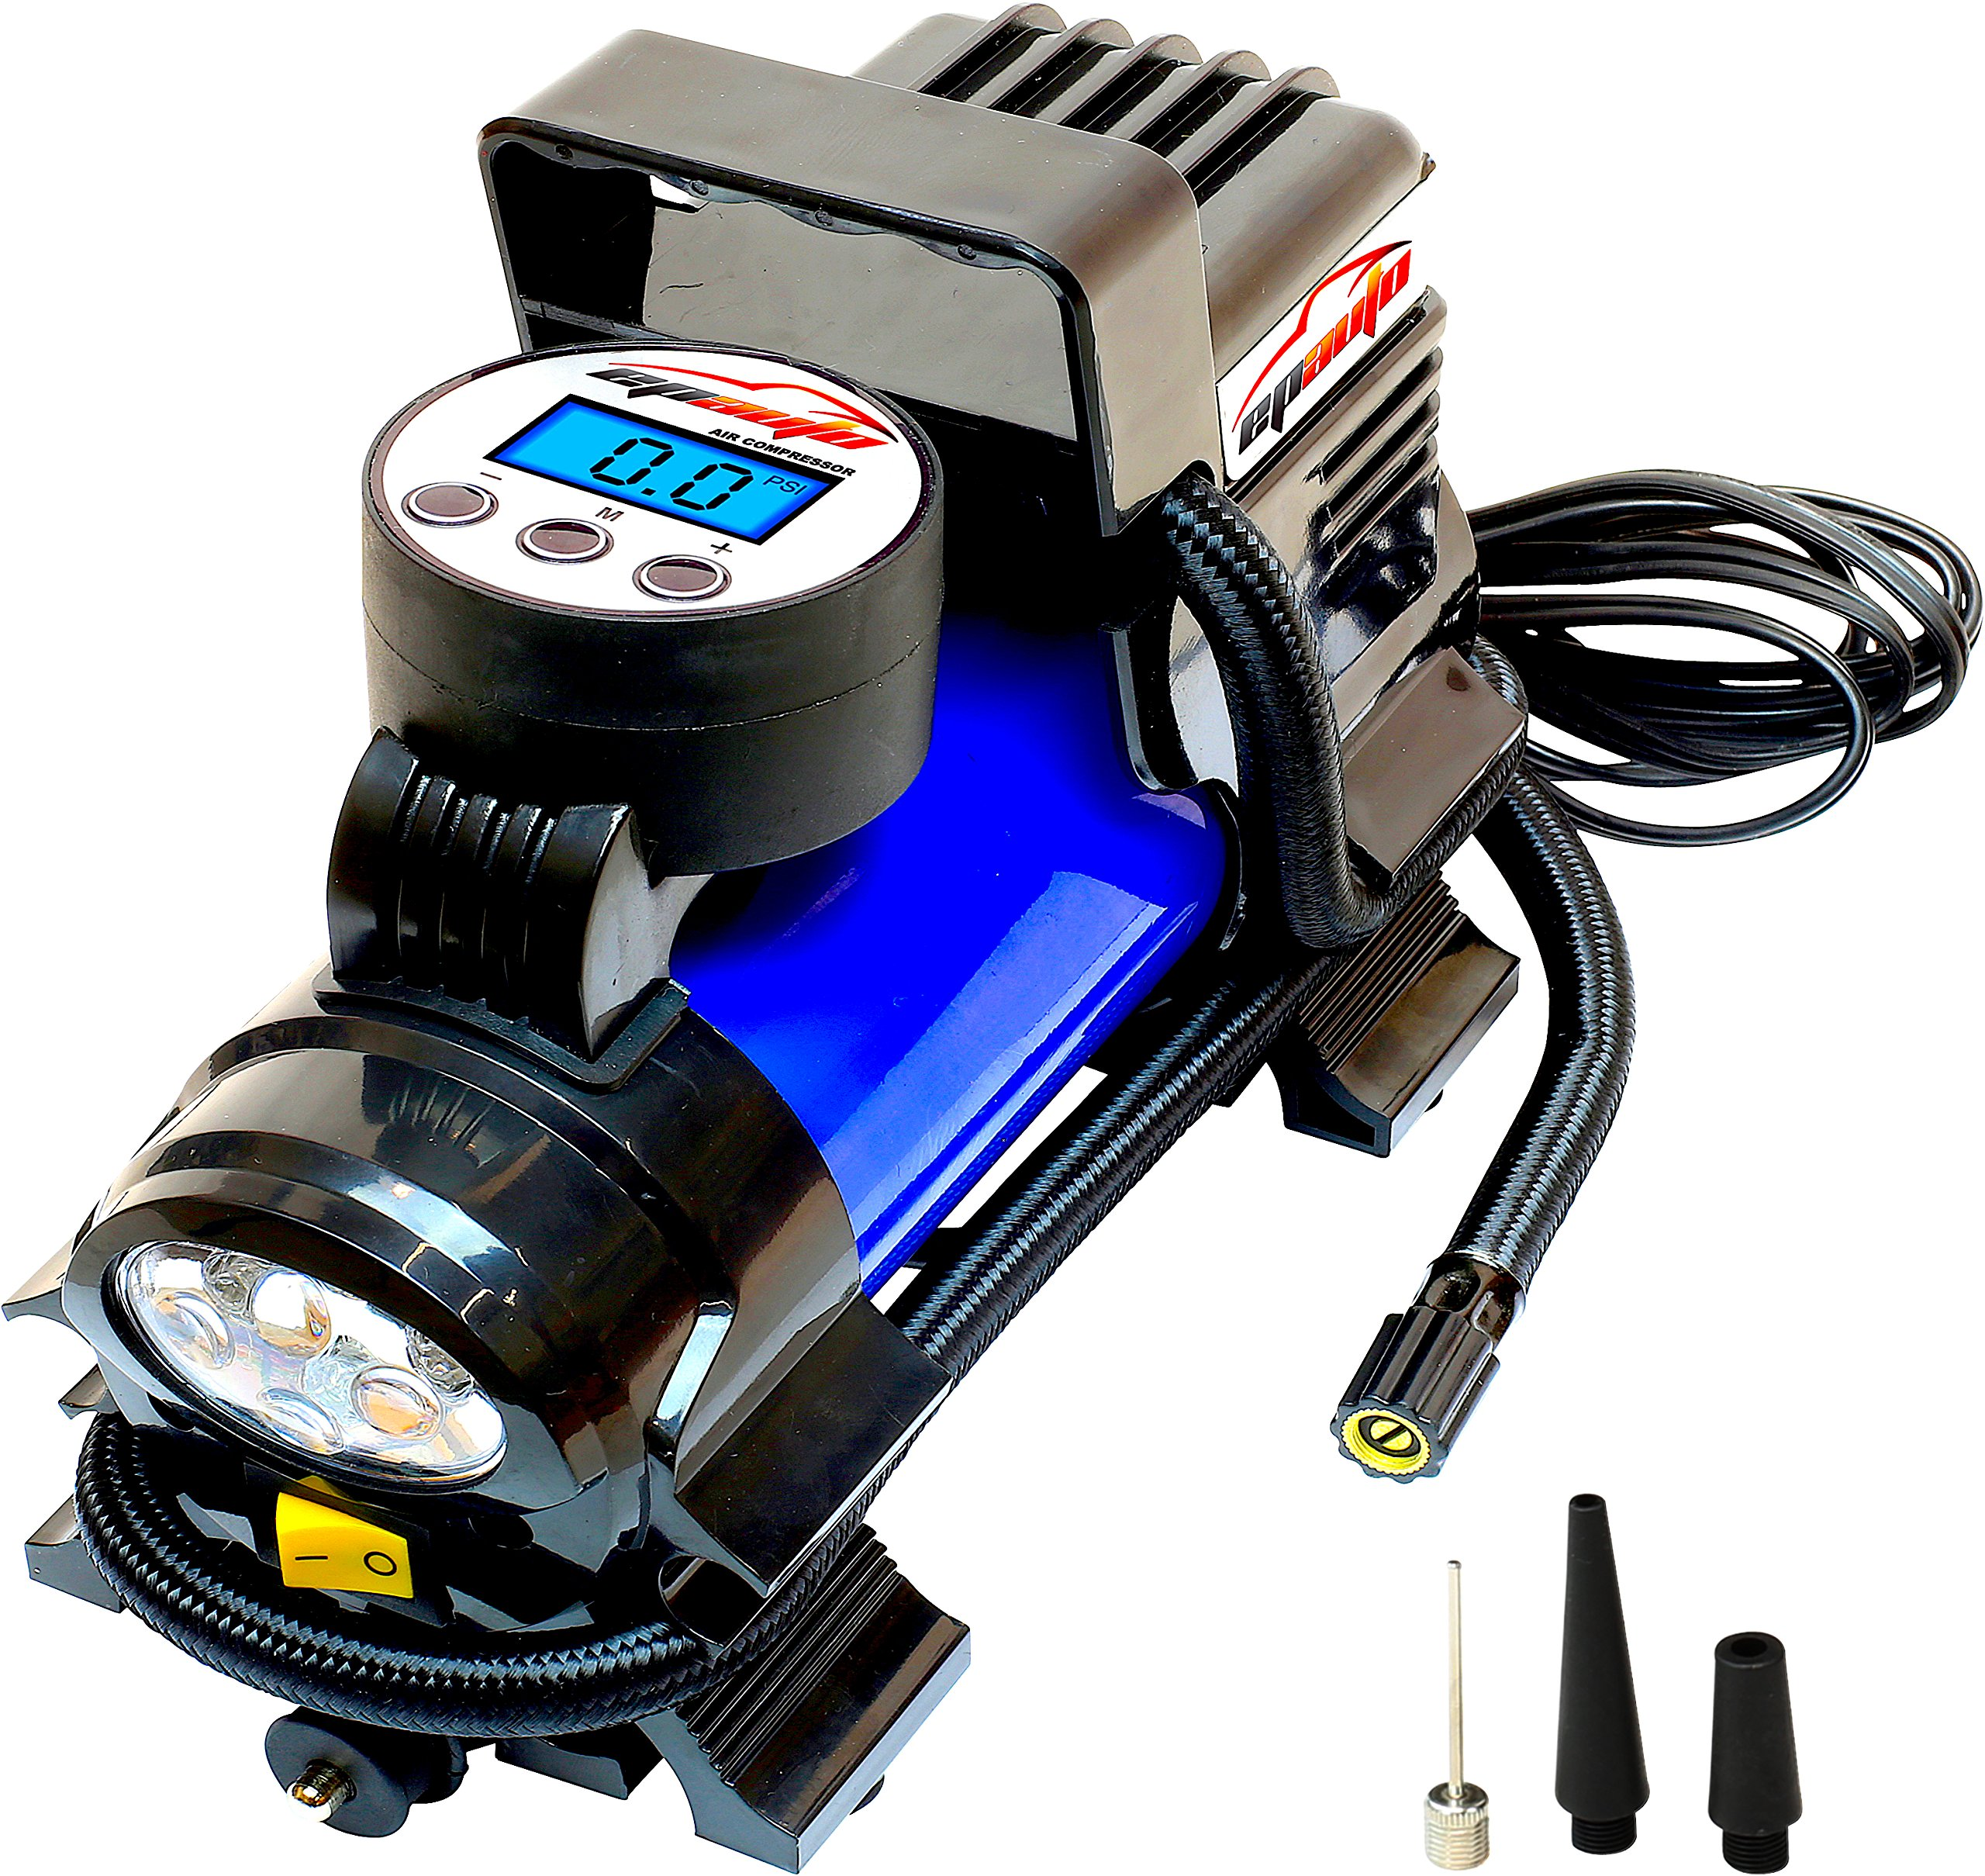 EPAuto 12V DC Portable Air Compressor Pump, Digital Tire Inflator